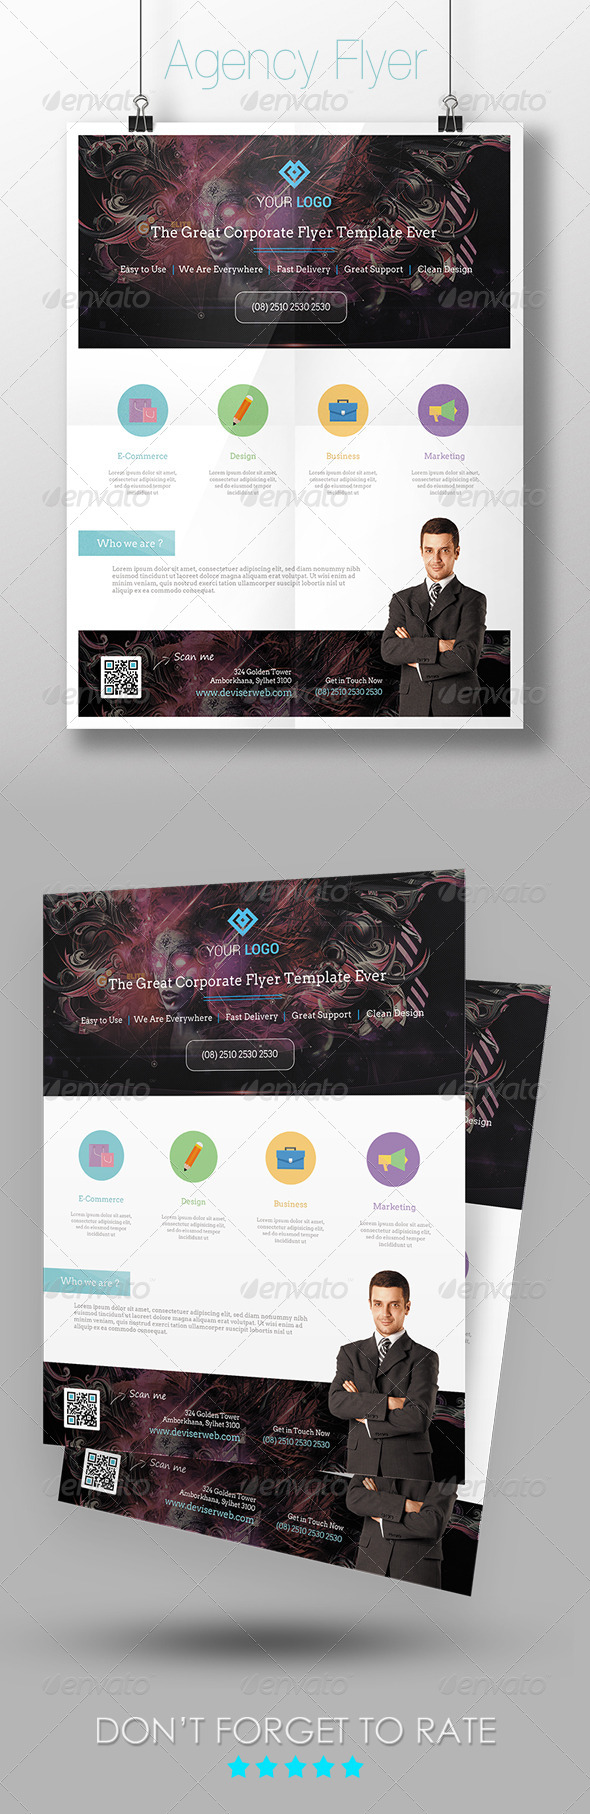 Corporate Agency Flyer Template - Corporate Flyers